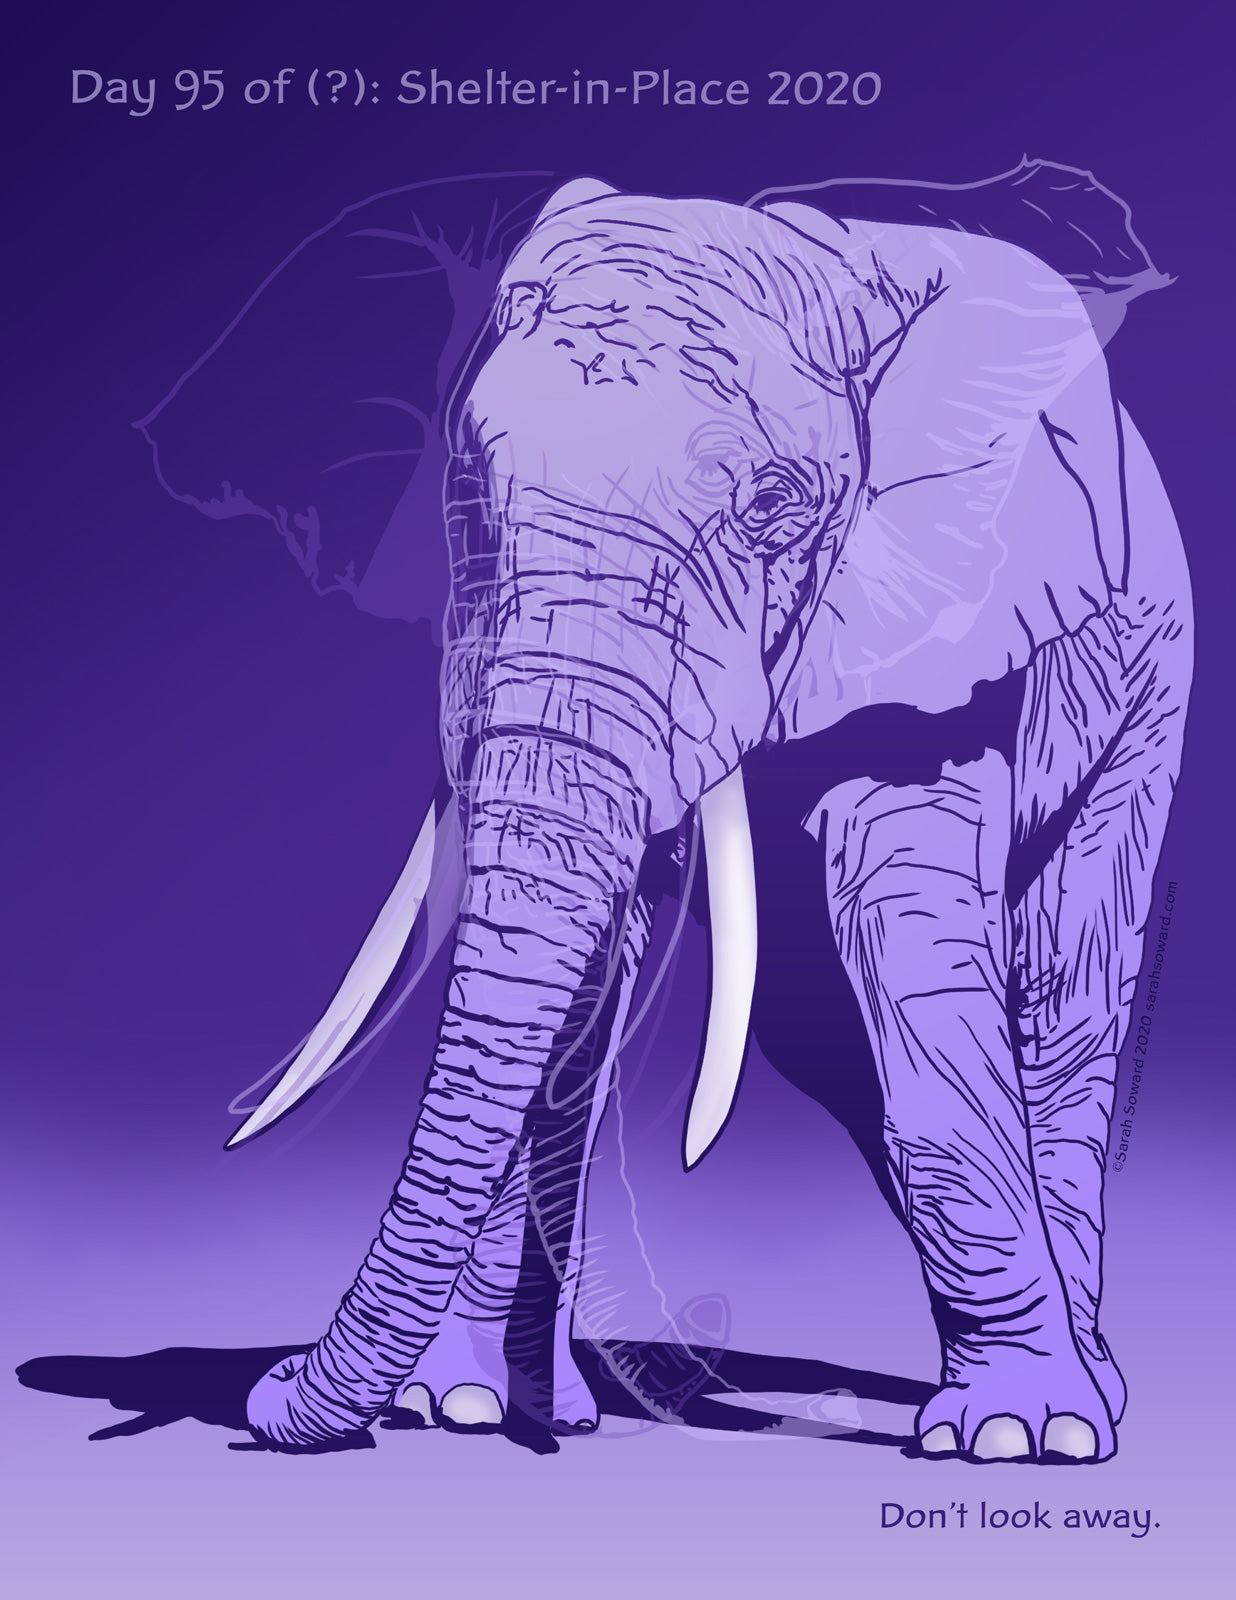 Everything is shades of purple. A lilac elephant swings his tusked head and trunk, taking up most of the image. Outlines of his ears and trunk help to show the movement. He might be angry. Height just be protecting himself and the elephants he loves (not pictured). We don't know if we don't ask. The text on the image says  Don't look away.